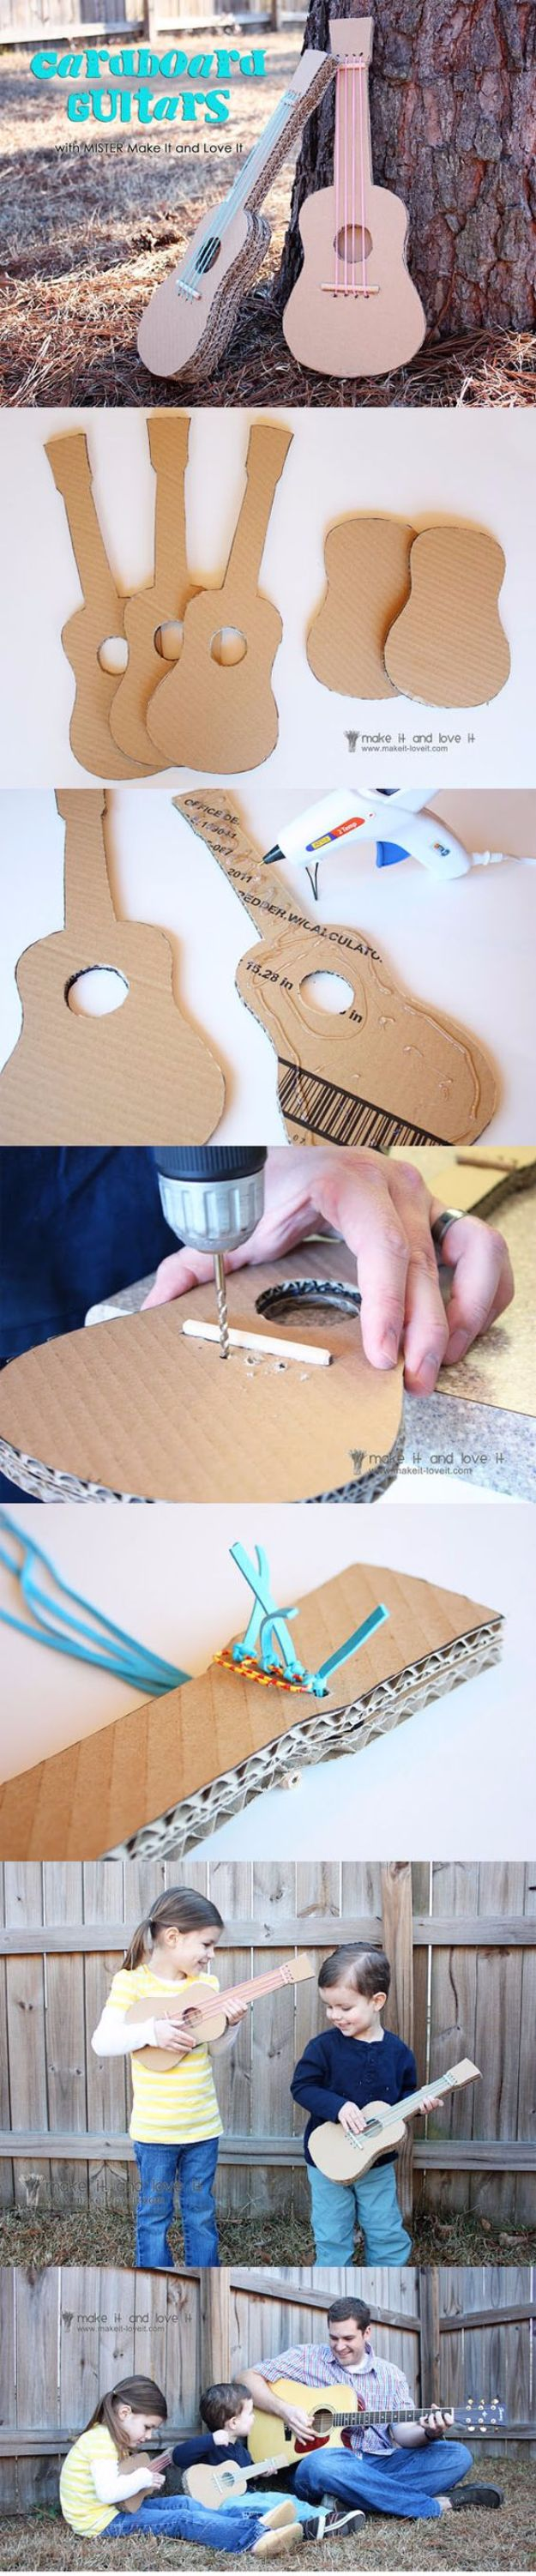 DIY Ideas With Cardboard - Cardboard Guitars - How To Make Room Decor Crafts for Kids - Easy and Crafty Storage Ideas For Room - Toilet Paper Roll Projects Tutorials - Fun Furniture Ideas with Cardboard - Cheap, Quick and Easy Wall Decorations http://diyjoy.com/diy-ideas-cardboard